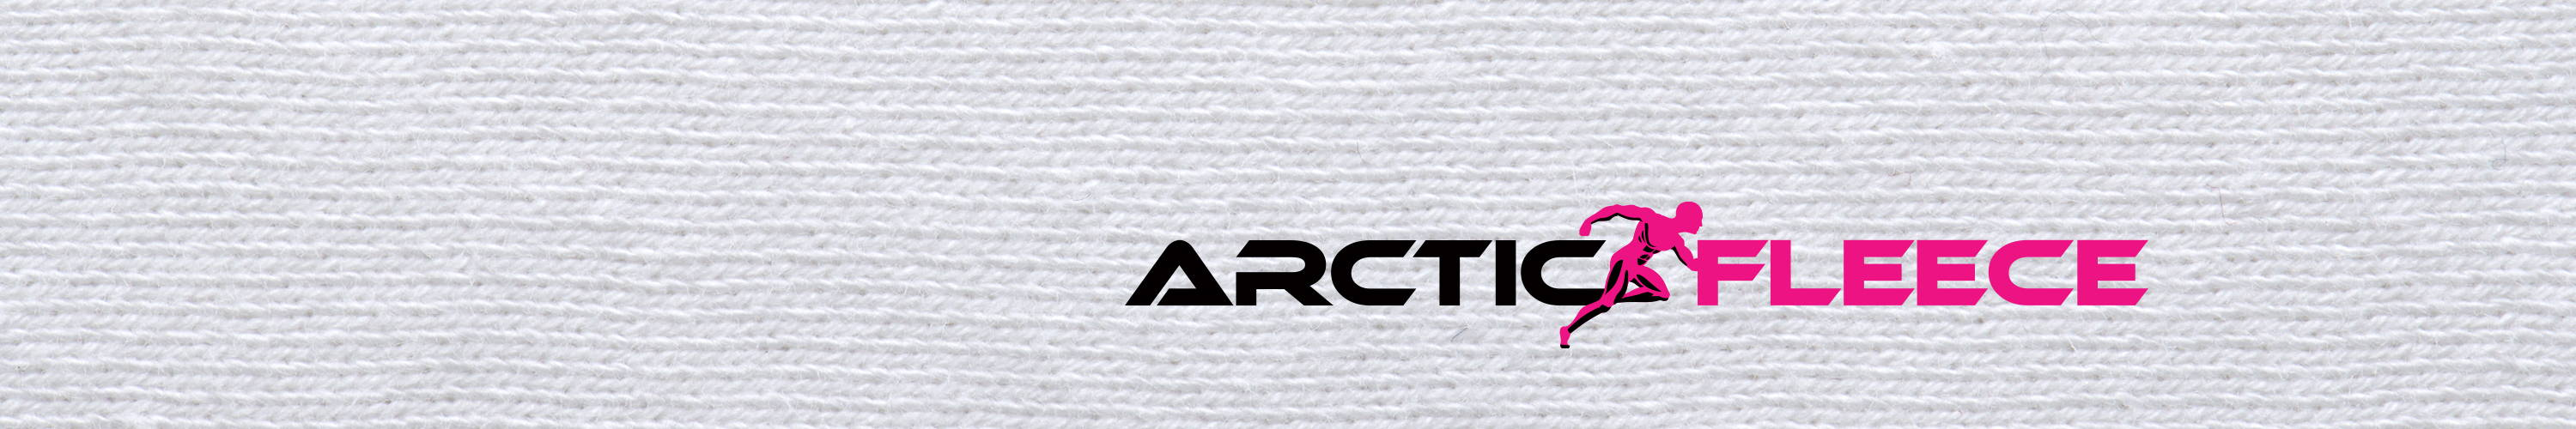 Soft and luxurious, ArcticFleece is the softest polar fleece on the market.